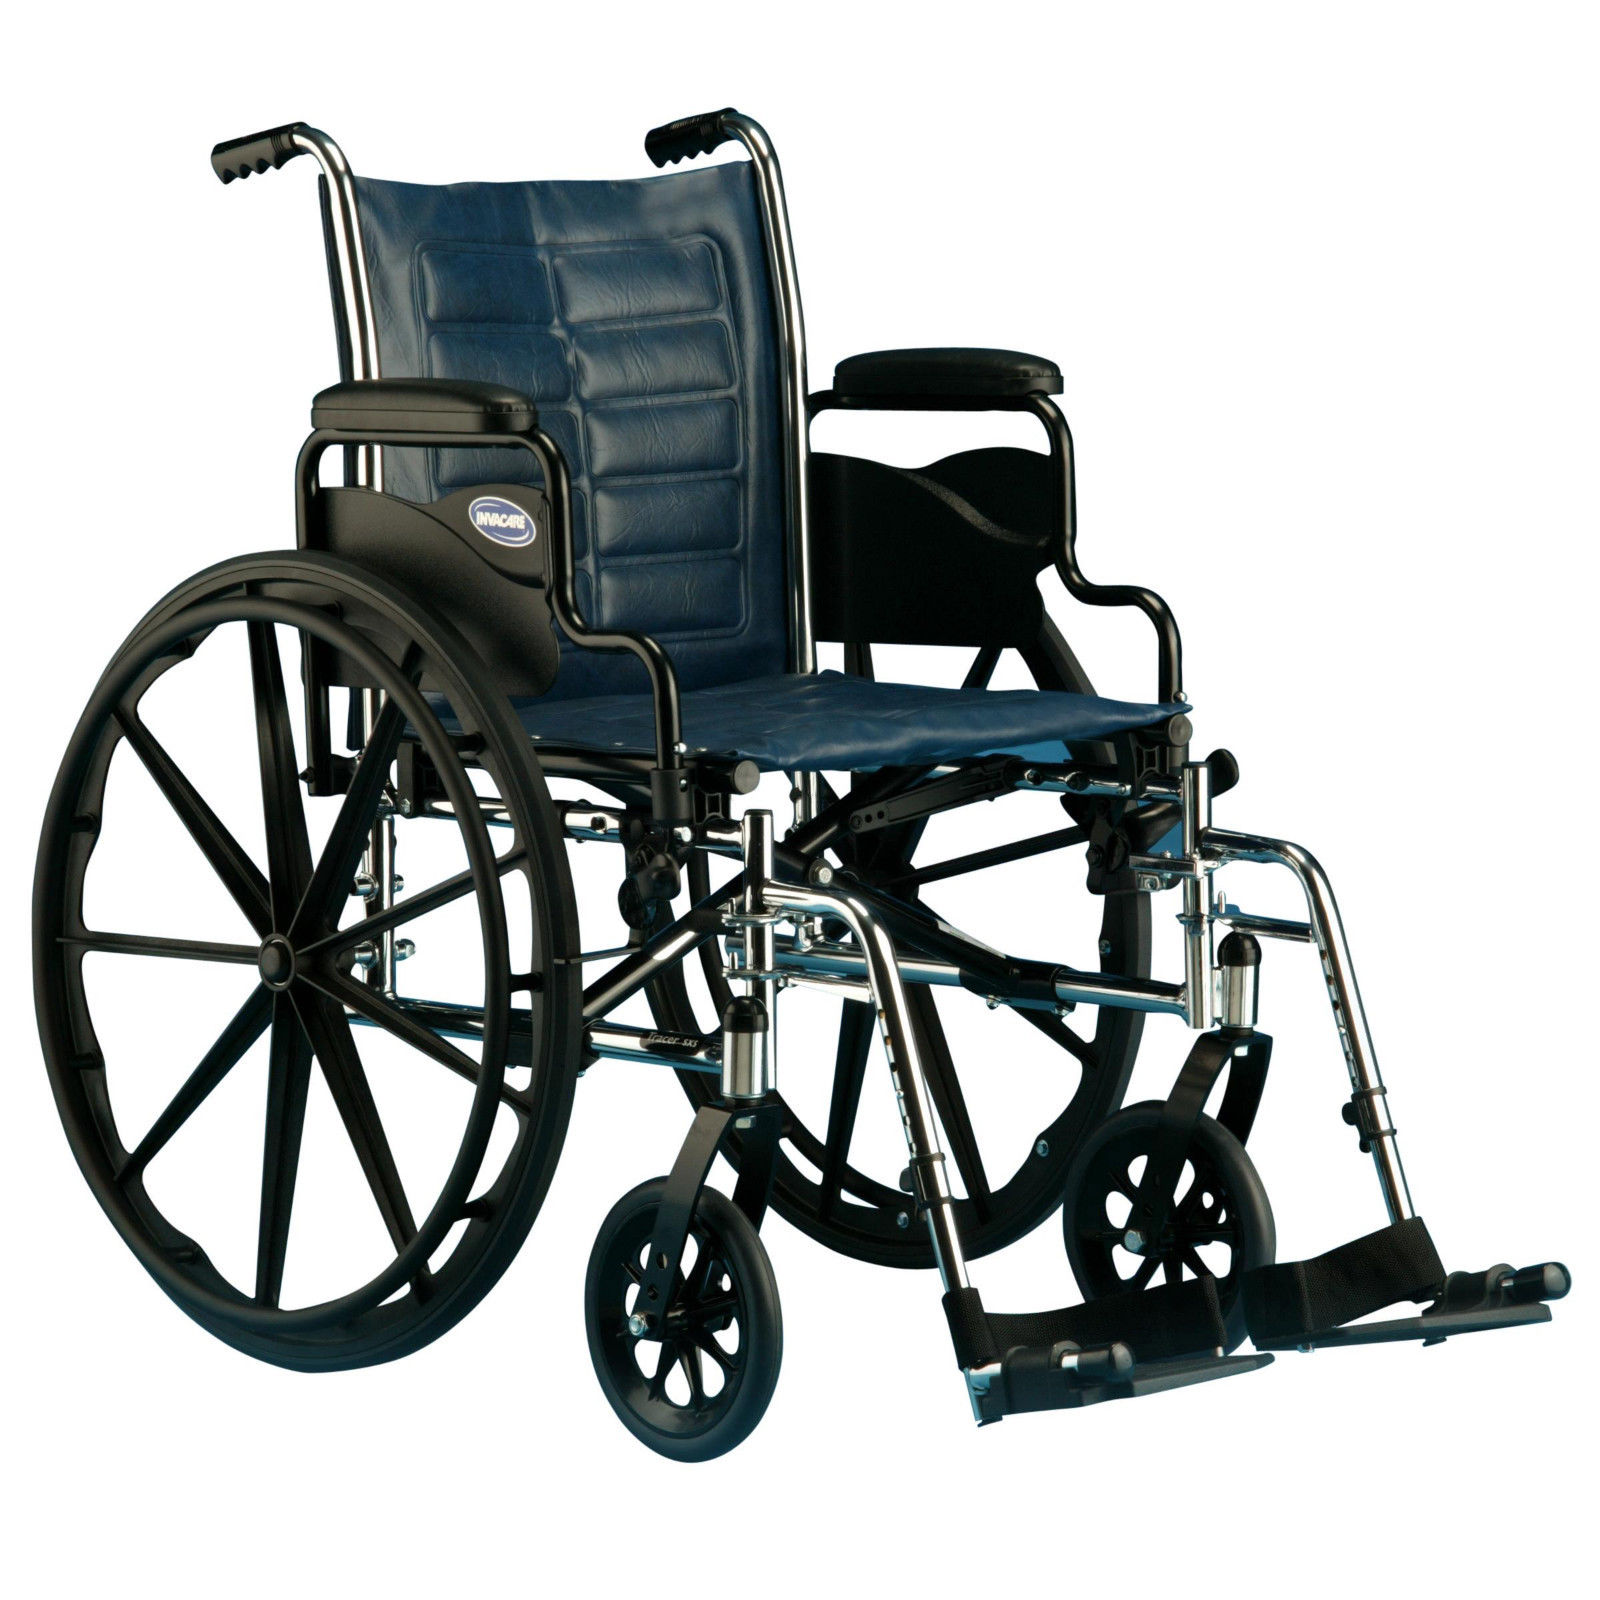 """Invacare Tracer IV Heavy Duty Bariatric Folding Wheelchair 20""""x18"""" w/ Footrests"""